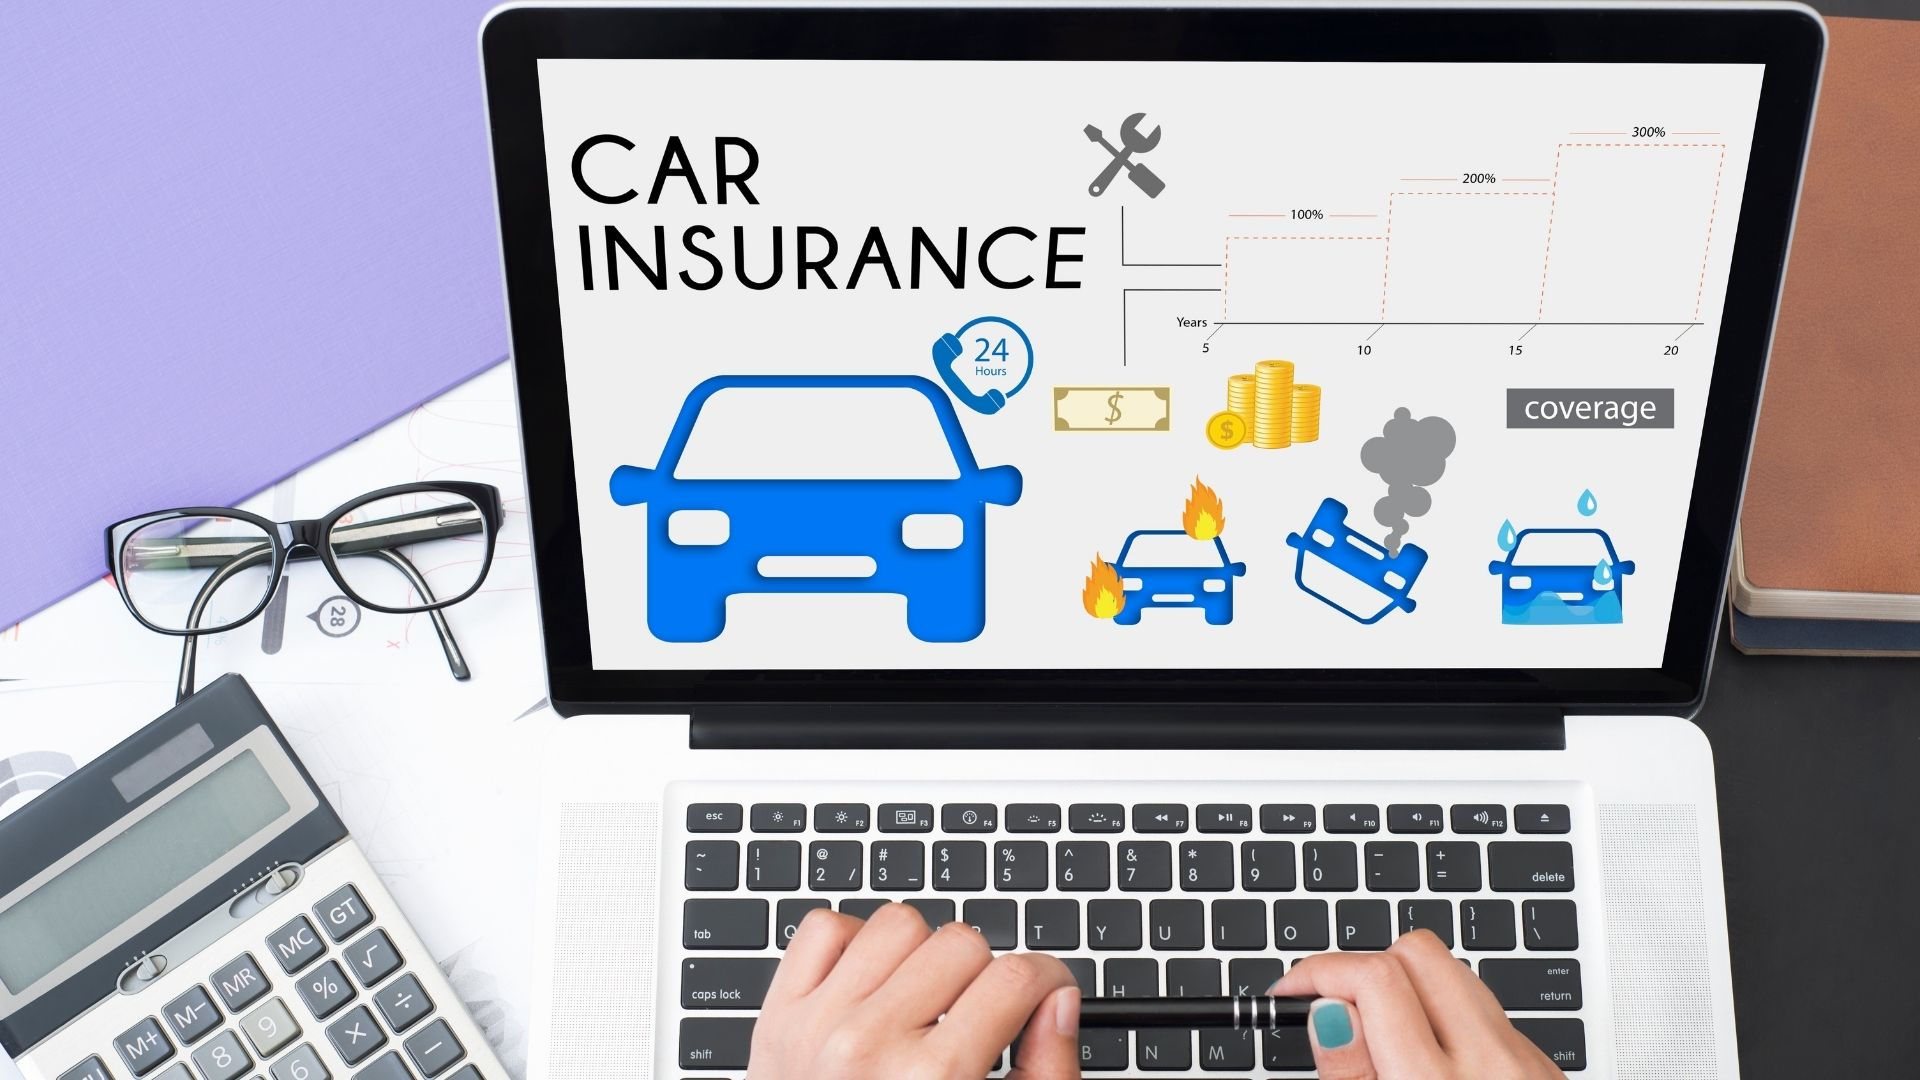 Zero Depreciation Car Insurance vs Comprehensive Car Insurance